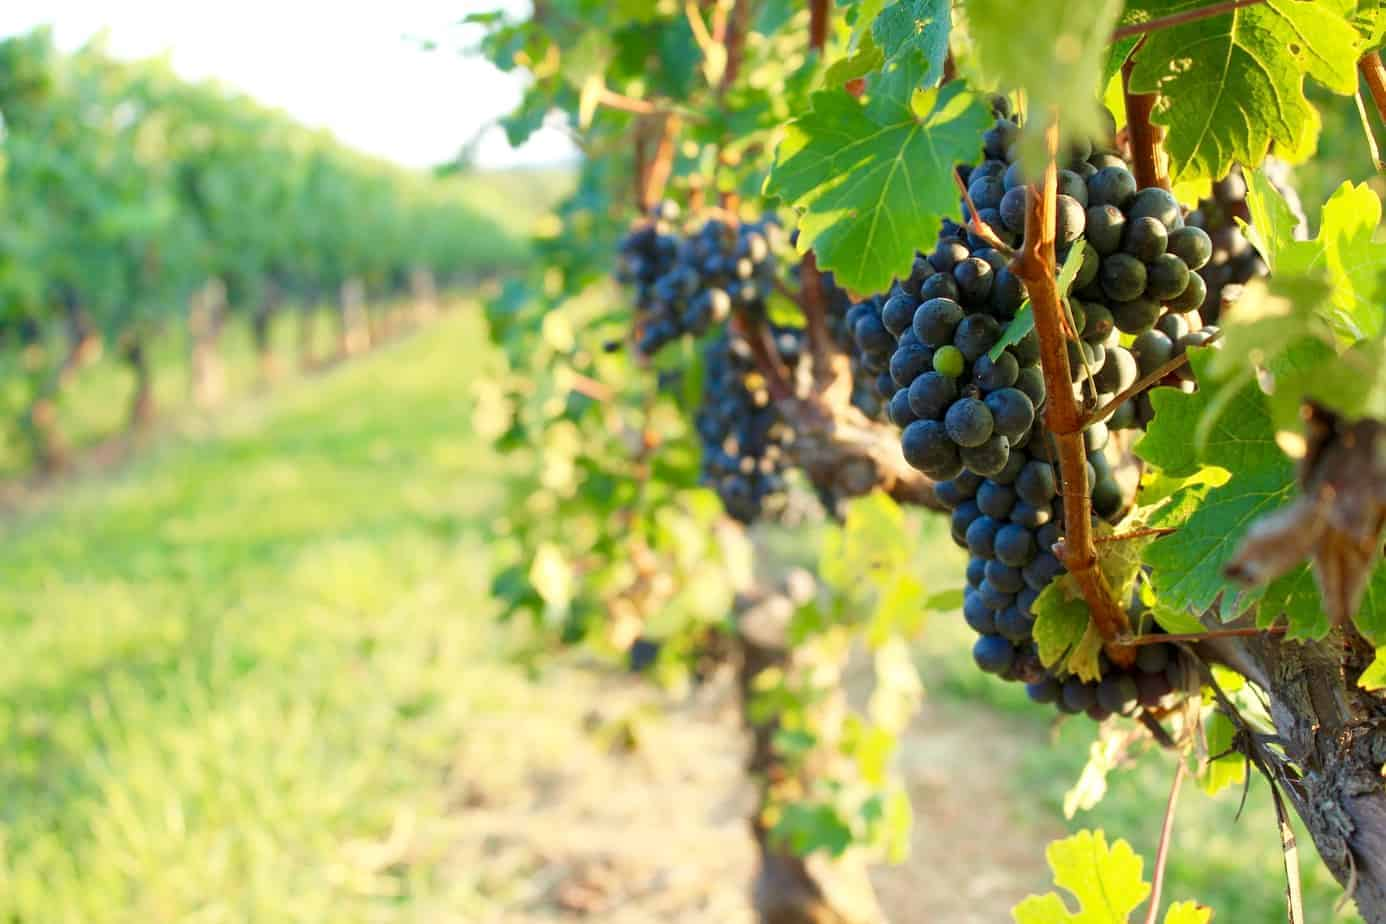 grapes growing on the vine in a vineyard at a north carolina winery